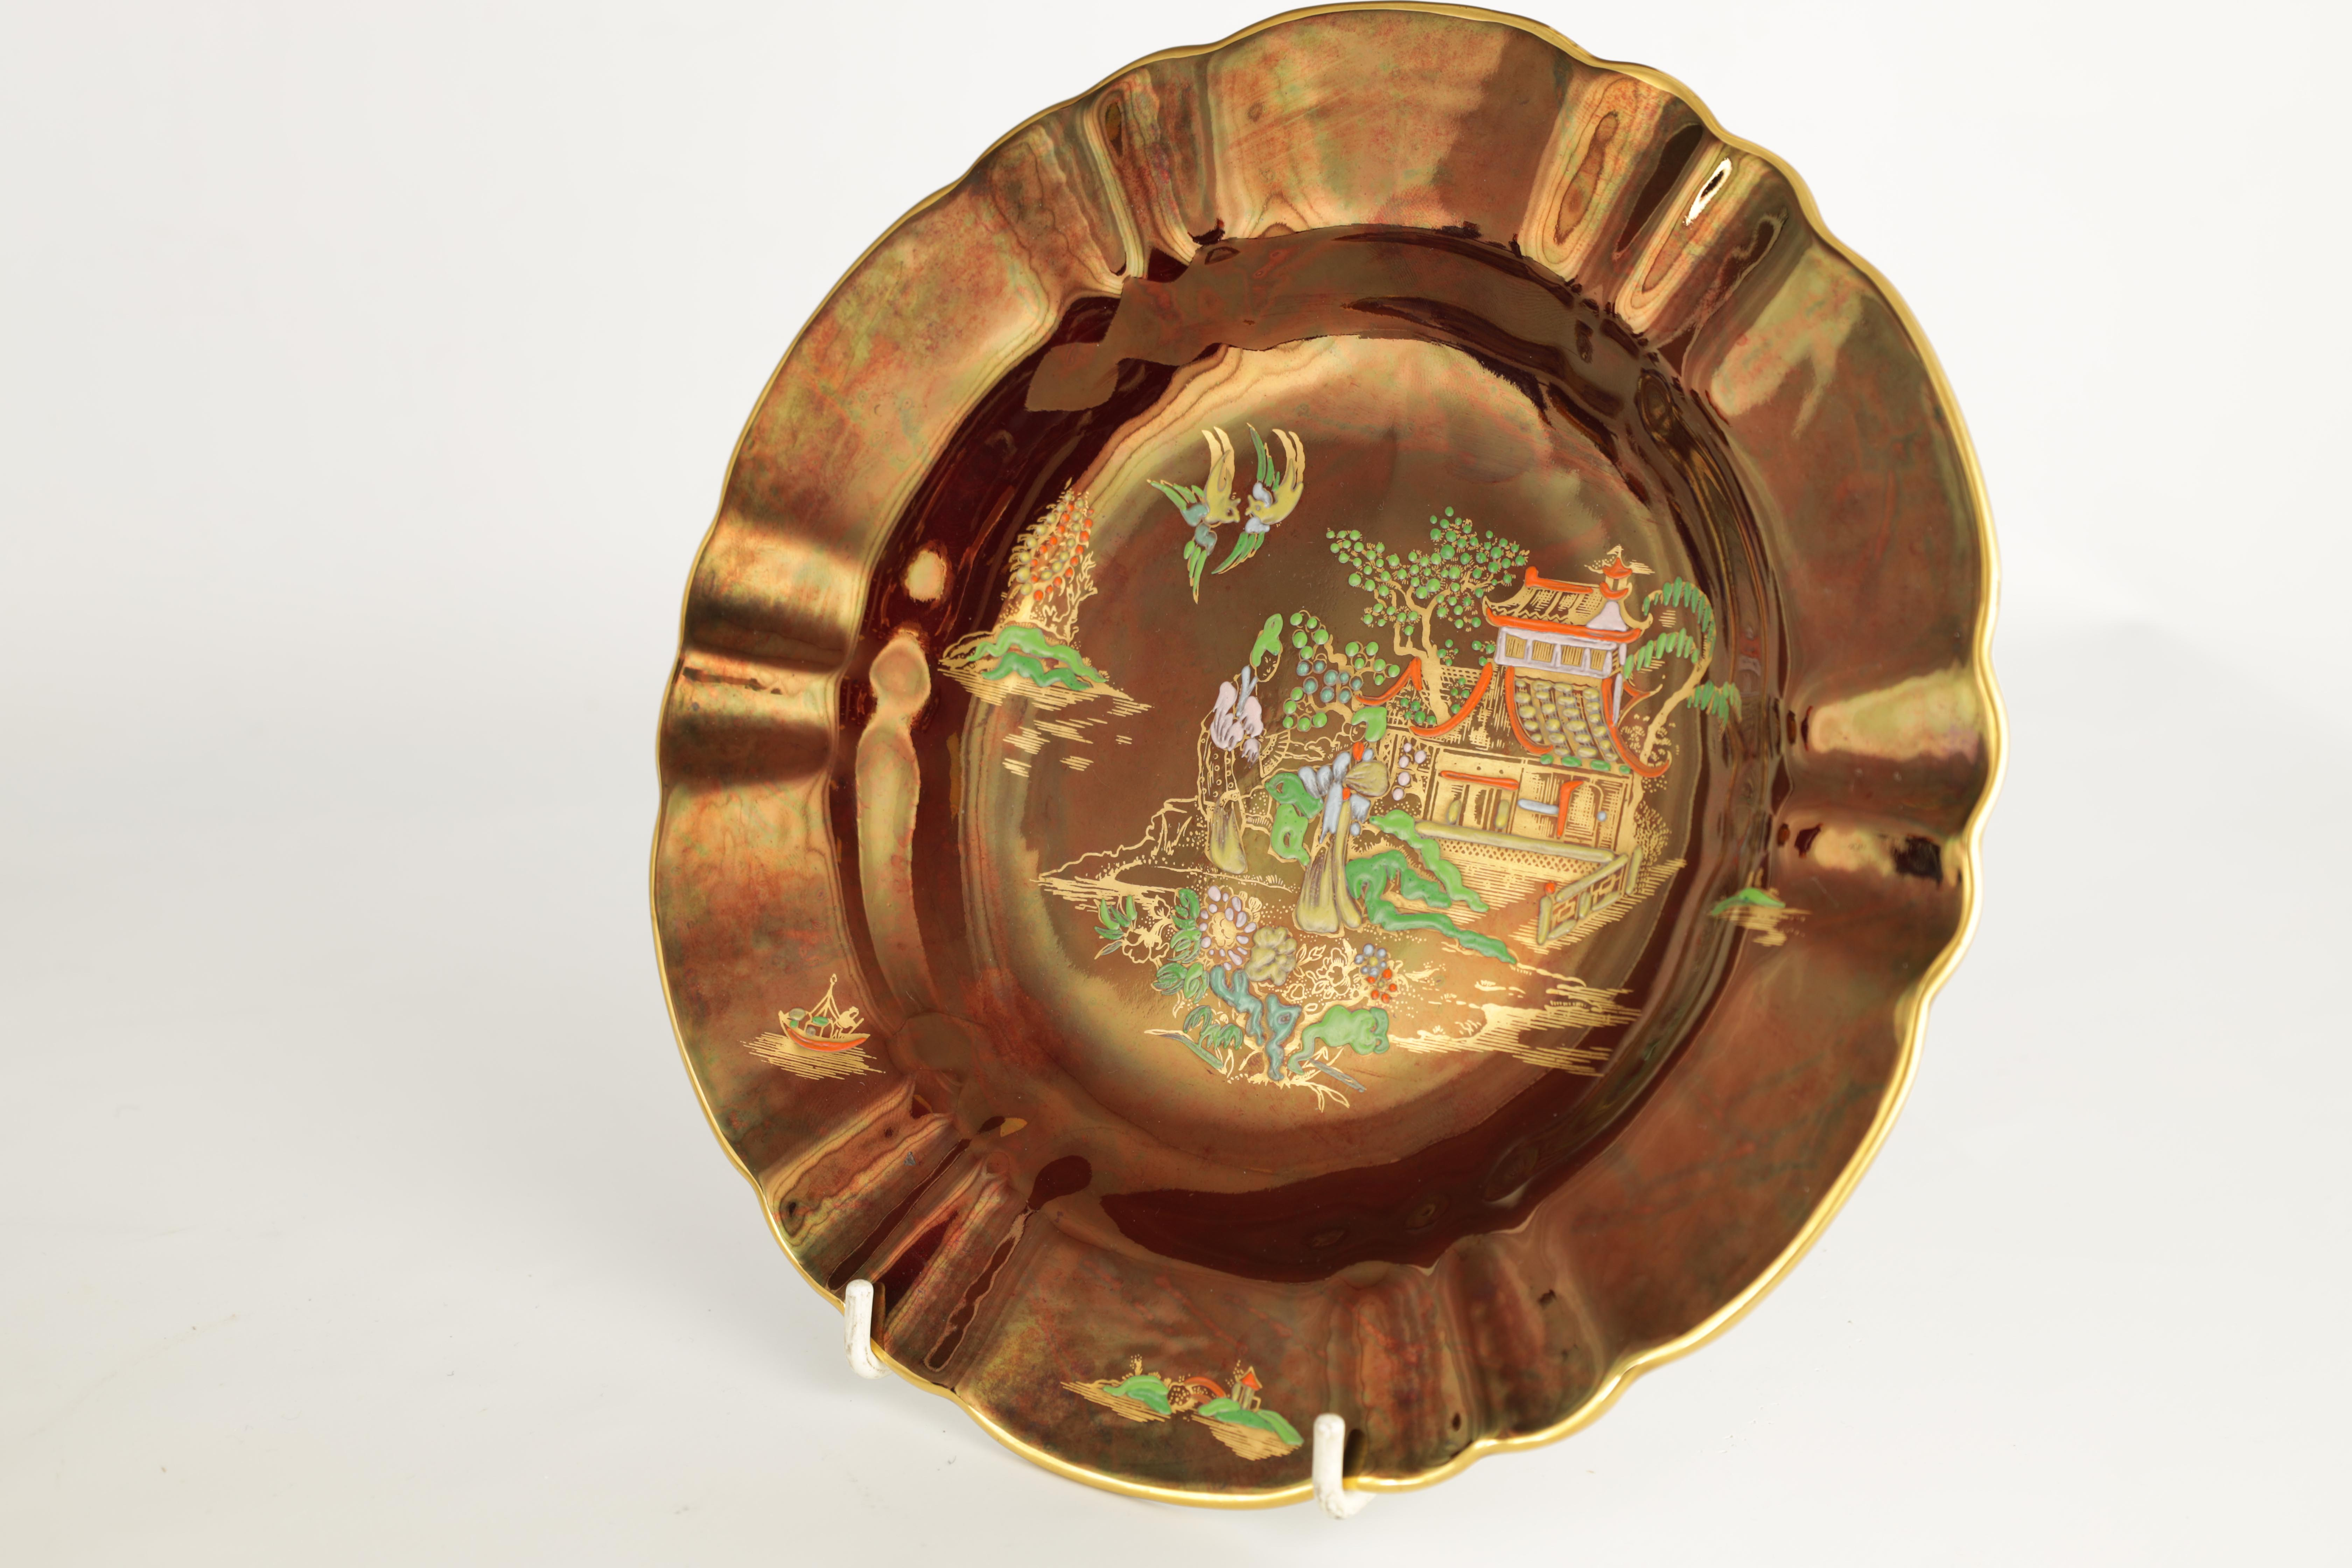 A CARLTON WARE FIVE PIECE DRESSING TABLE SET decorated in an oriental gilt pattern with pagodas - Image 5 of 18